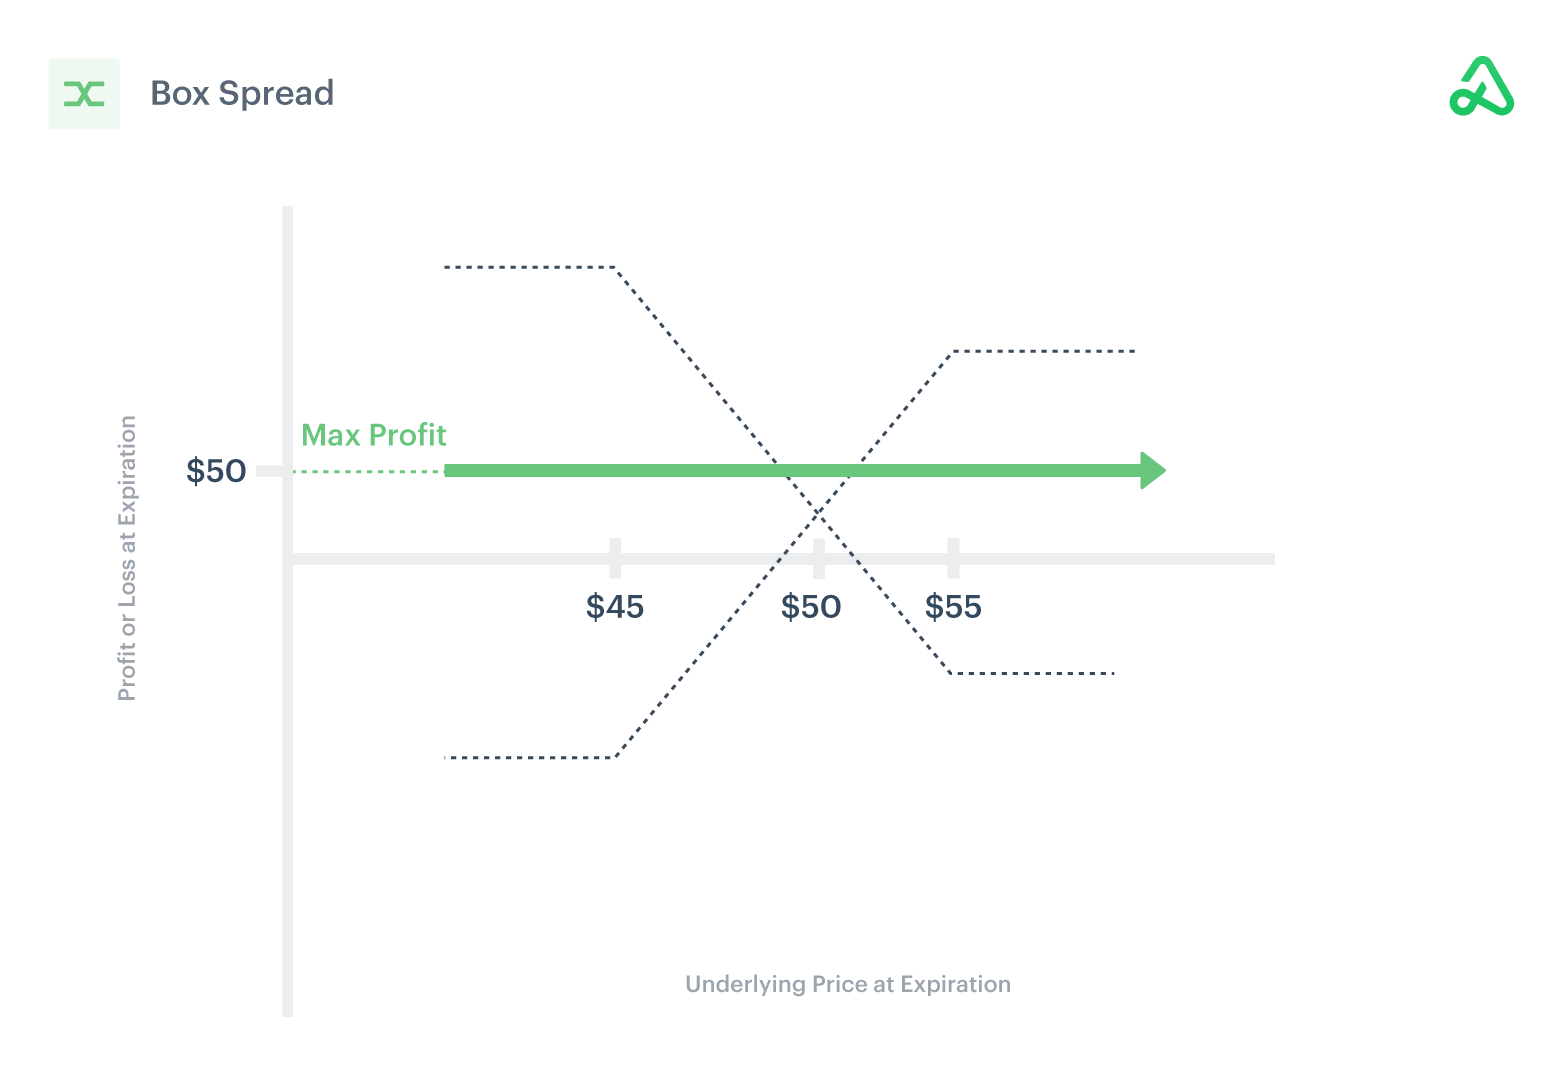 Image of short box spread payoff diagram showing max profit